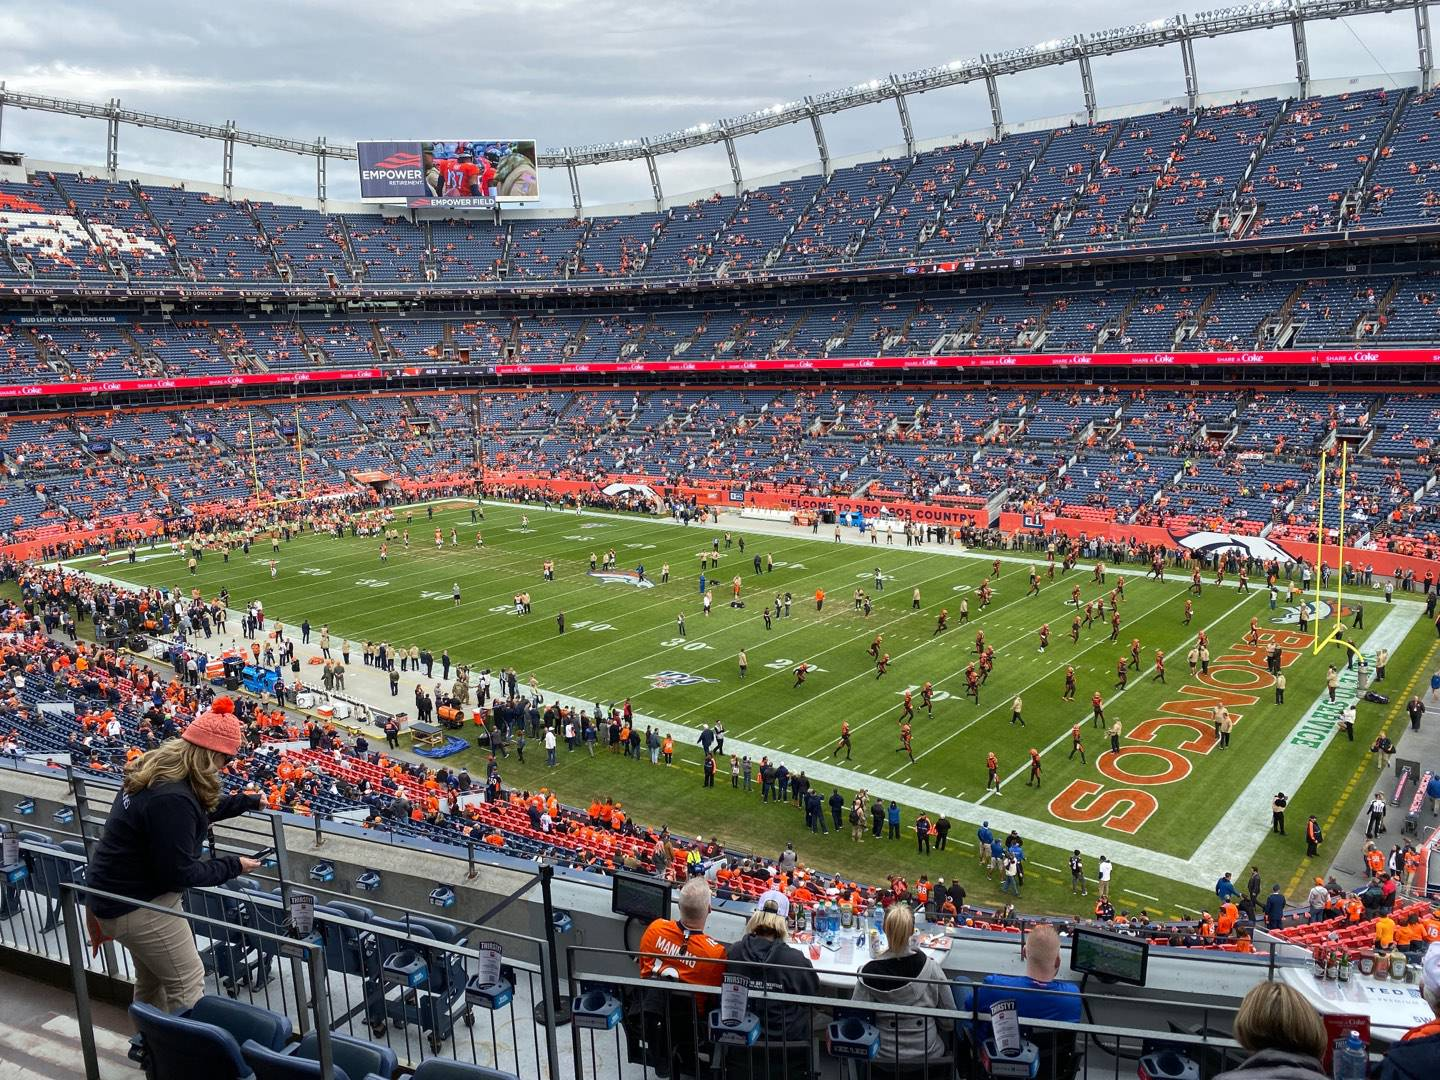 Empower Field at Mile High Stadium Section 302 Row 8 Seat 8